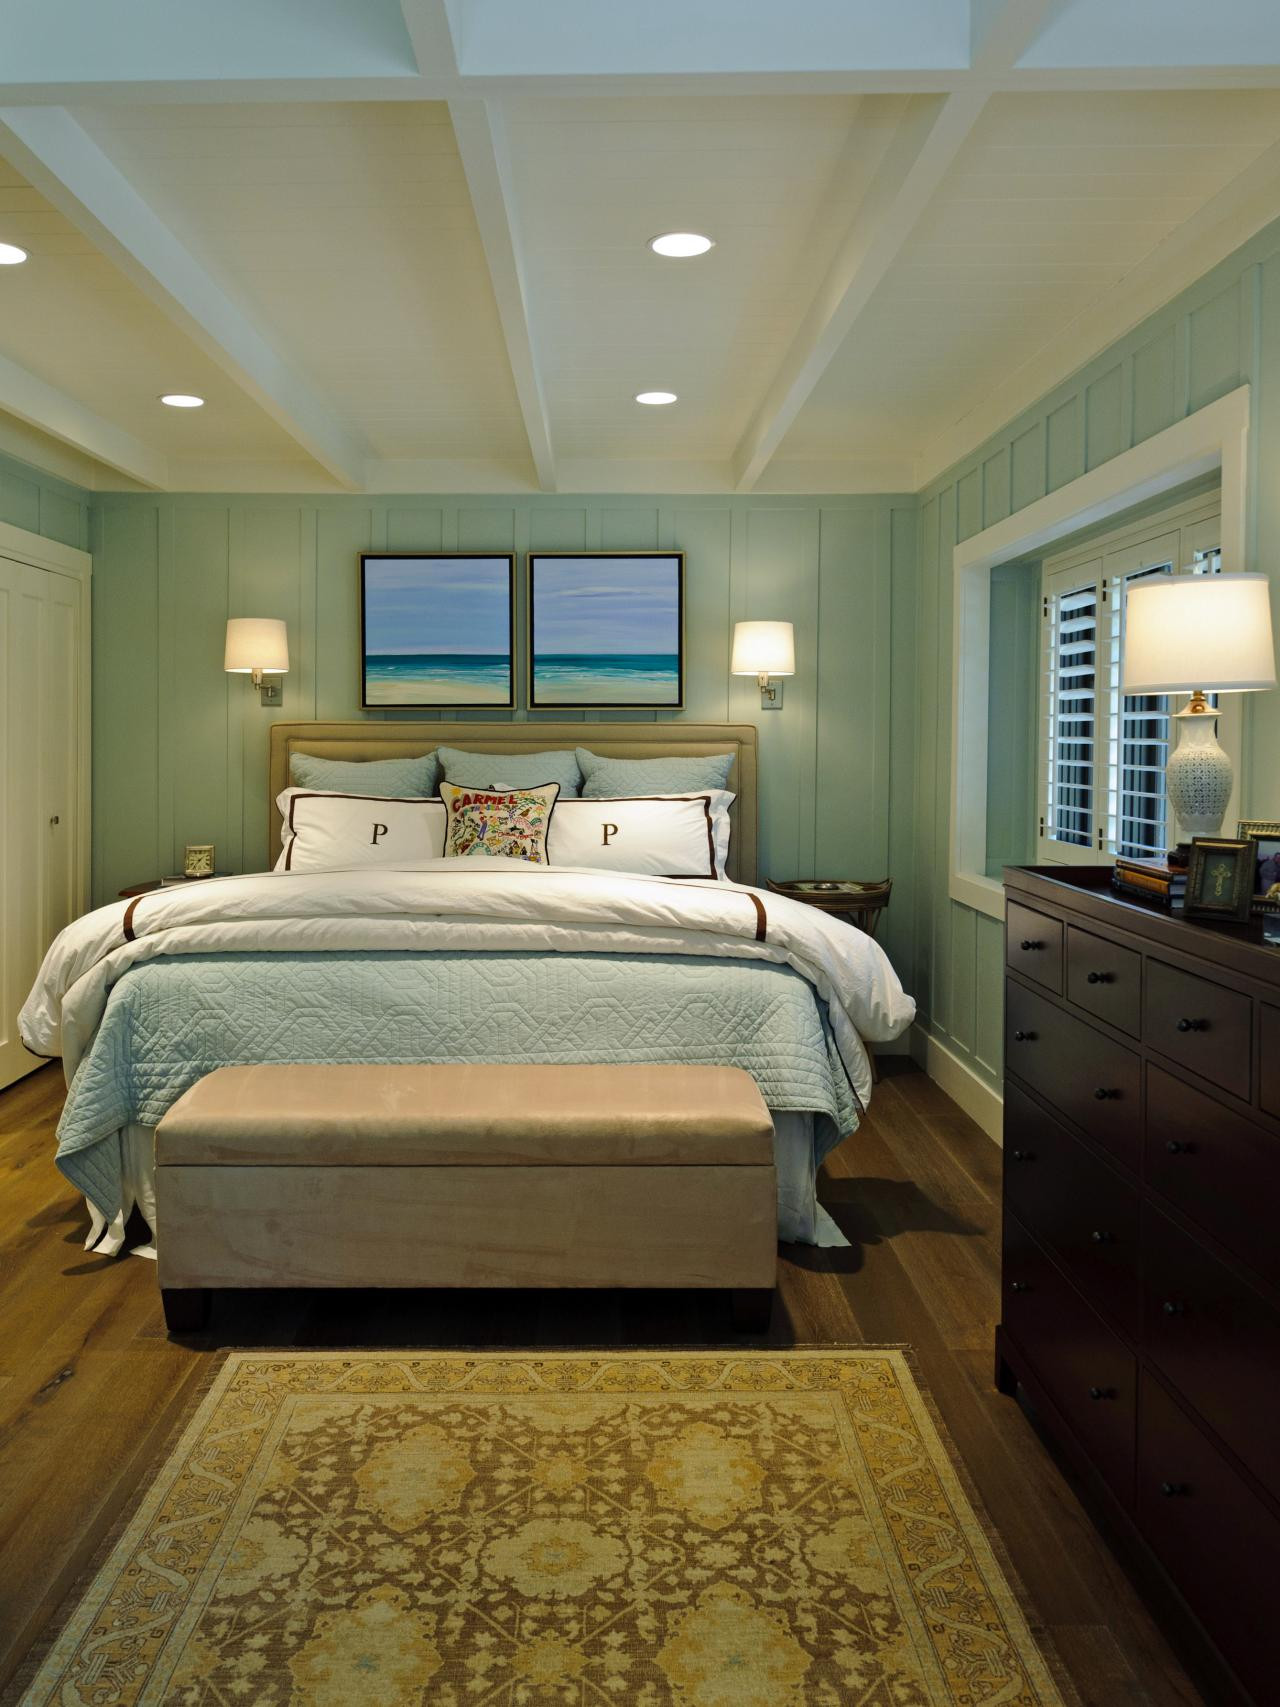 Best ideas about Coastal Bedroom Ideas . Save or Pin 16 Beach Style Bedroom Decorating Ideas Now.